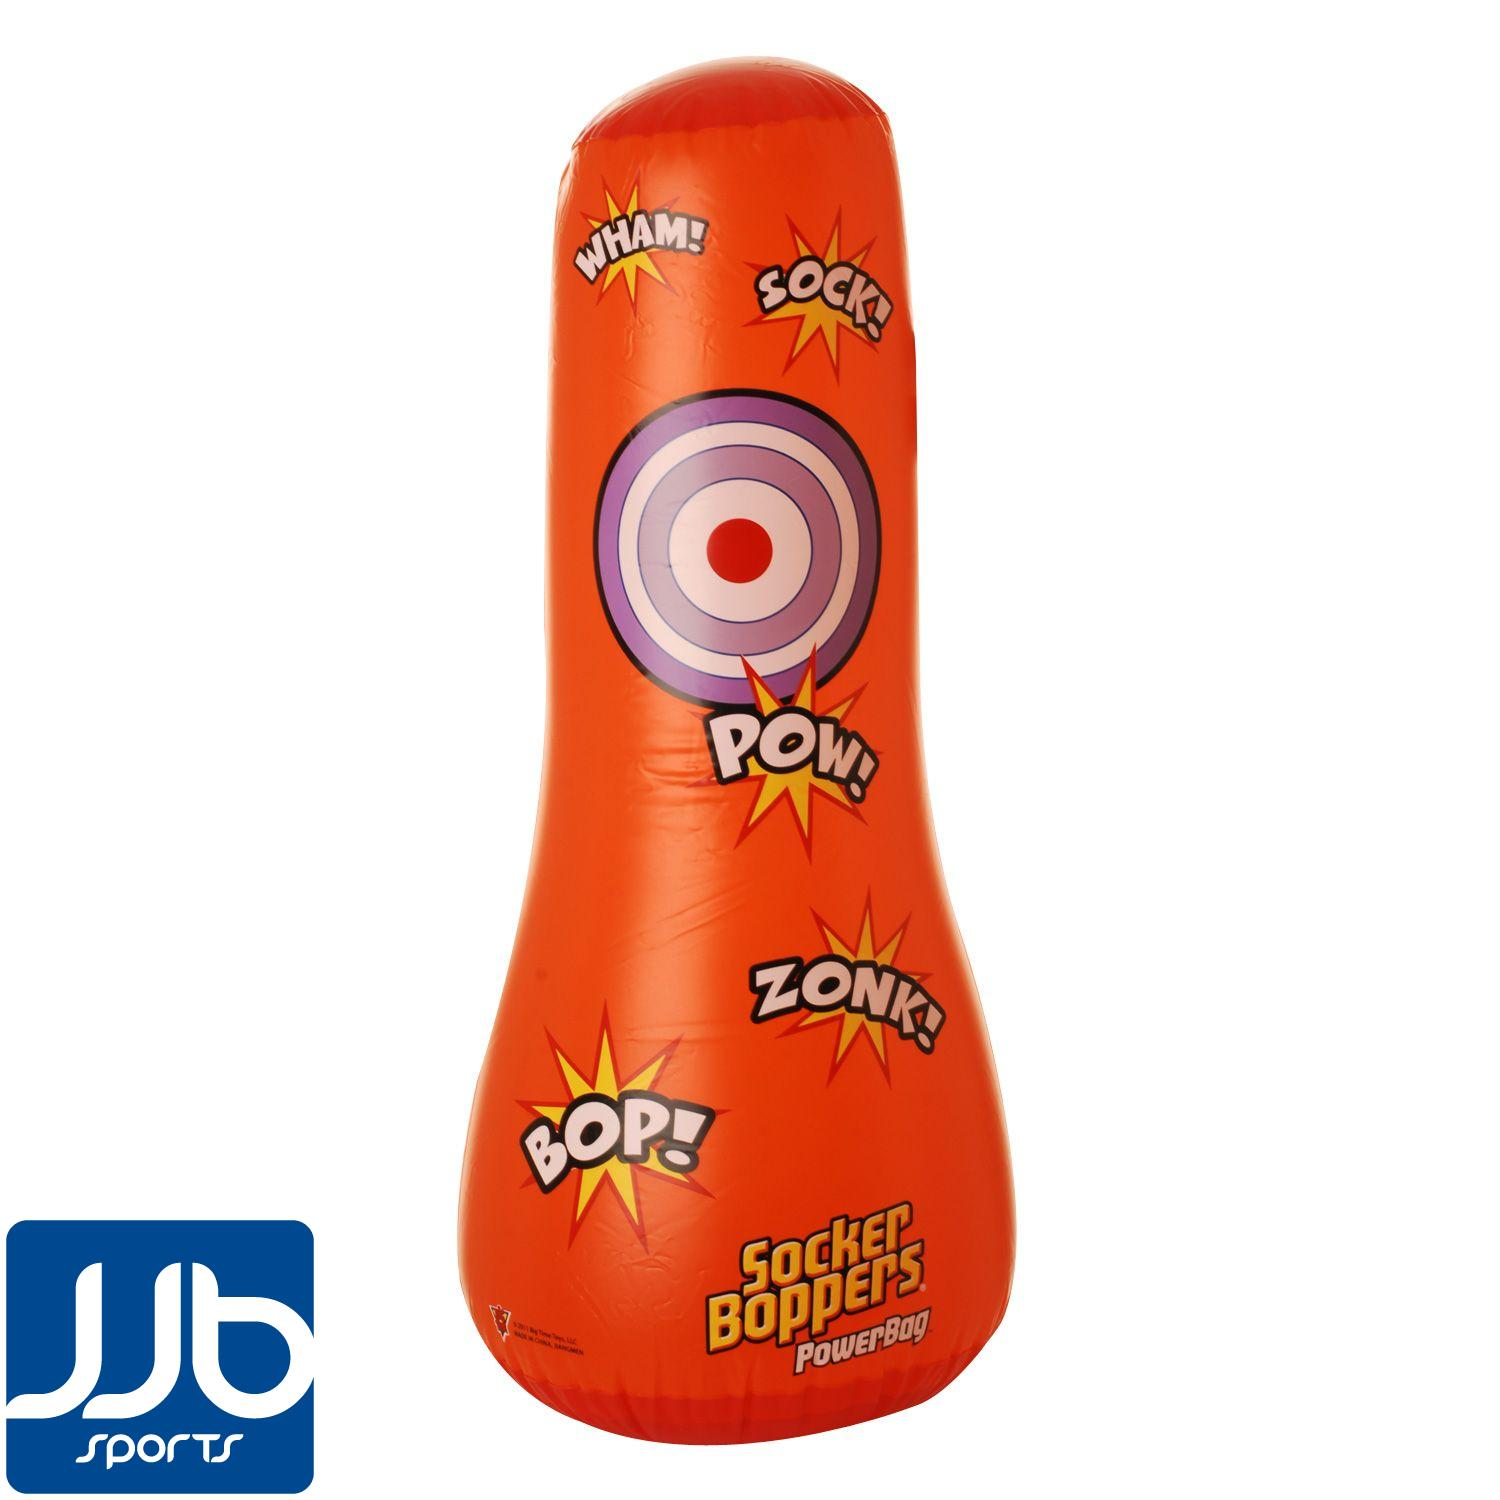 Socker Boppers Power Bag: Wicked Socker Boppers PowerBag